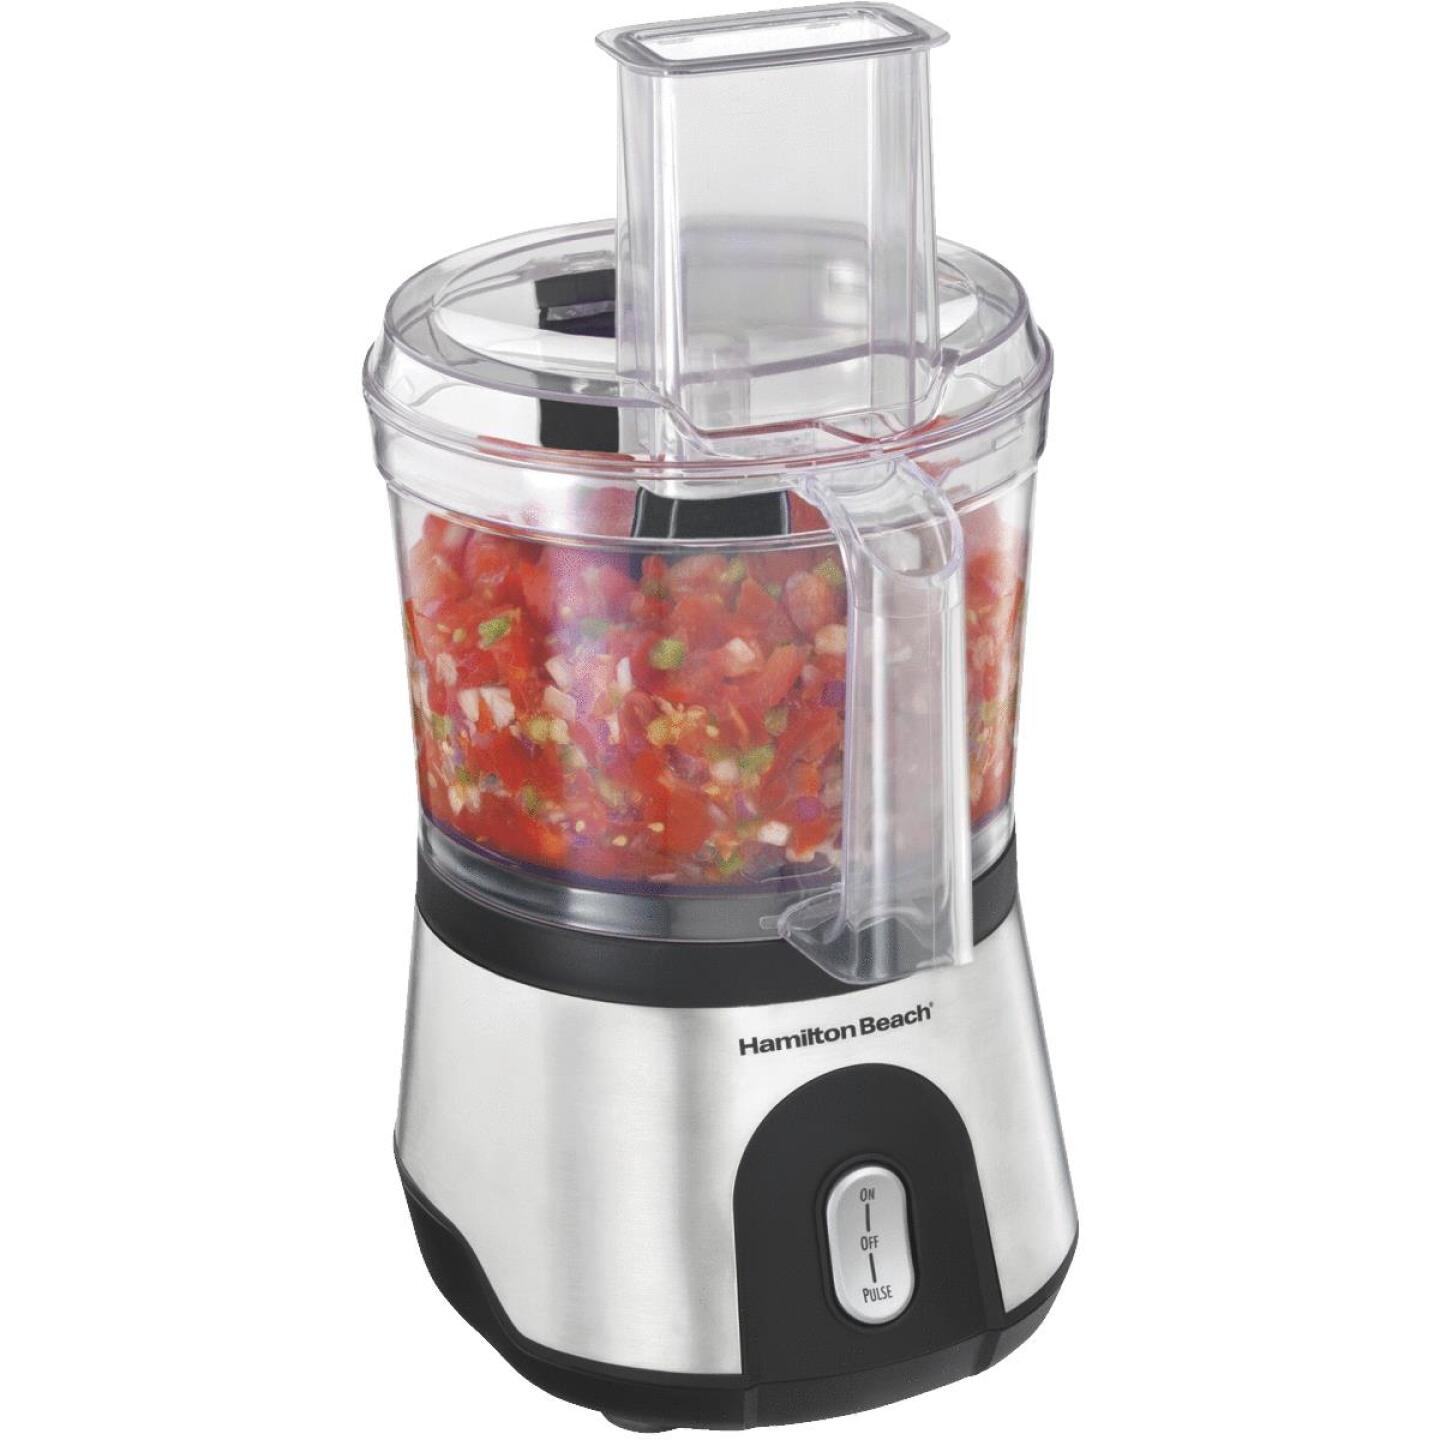 Hamilton Beach 10-Cup Stainless Steel Food Processor Image 1